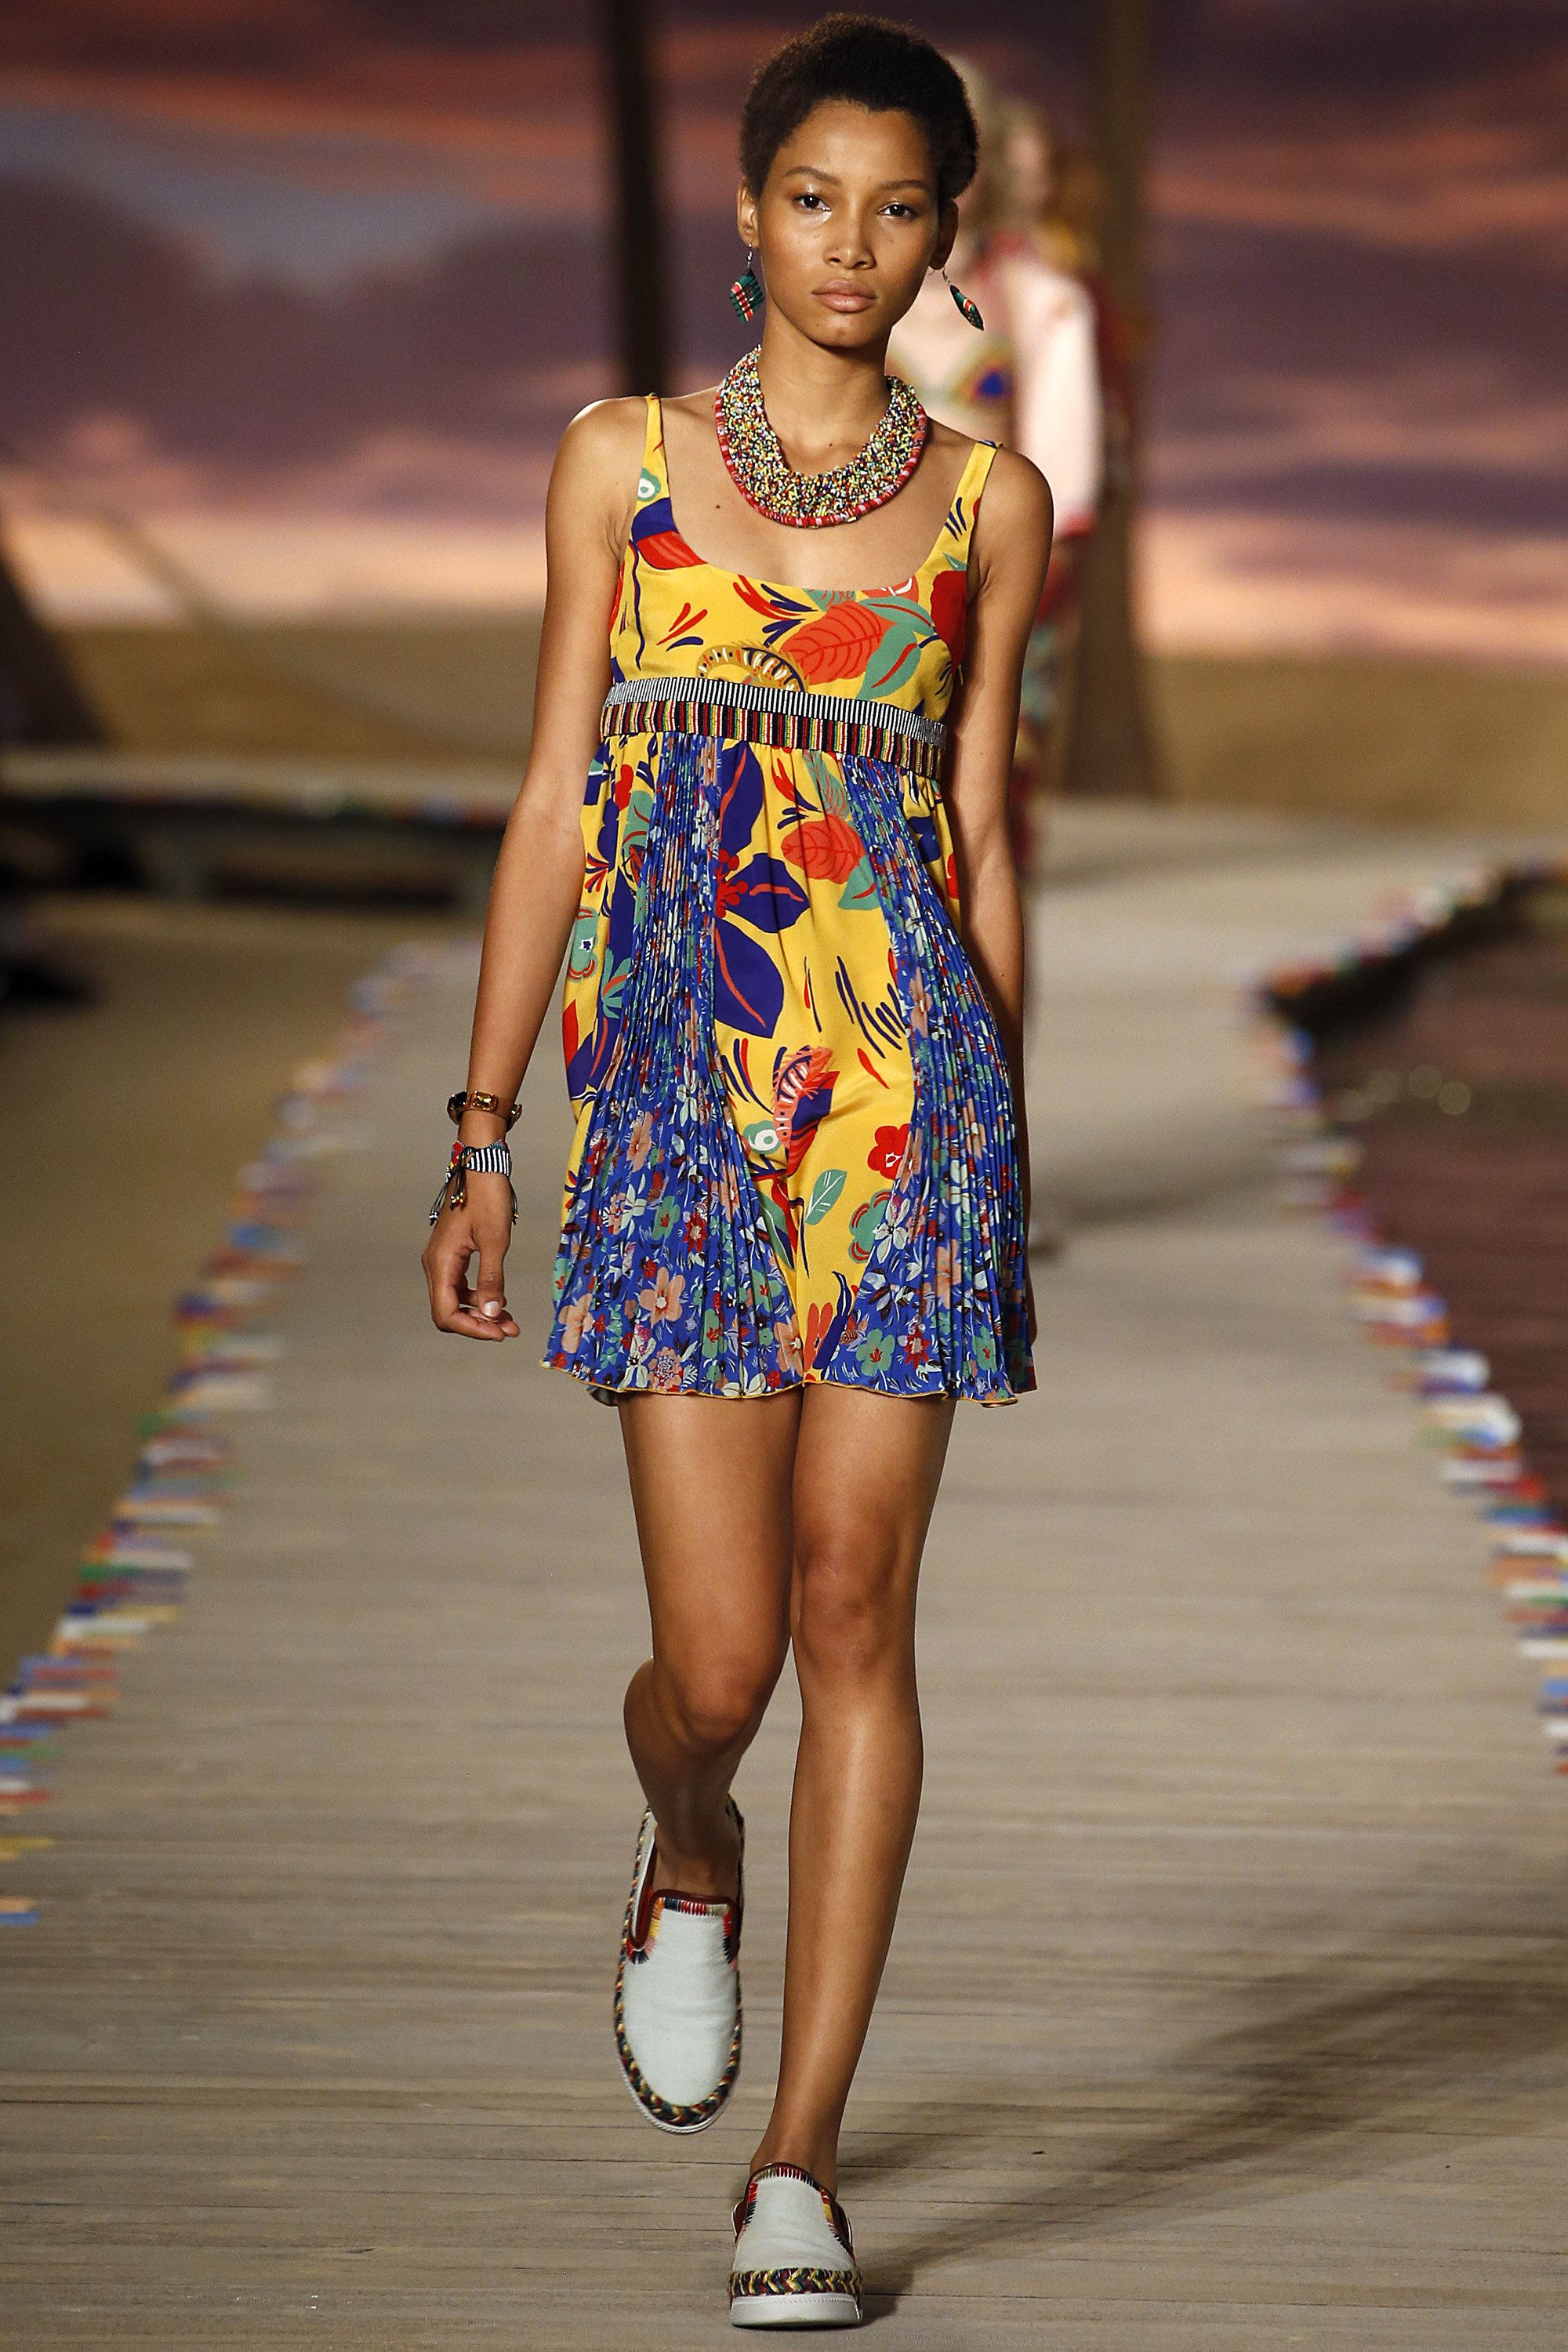 Tommy Hilfiger Spring 2016 Ready-to-Wear Fashion Show - Lineisy Montero  #TommyHilfiger